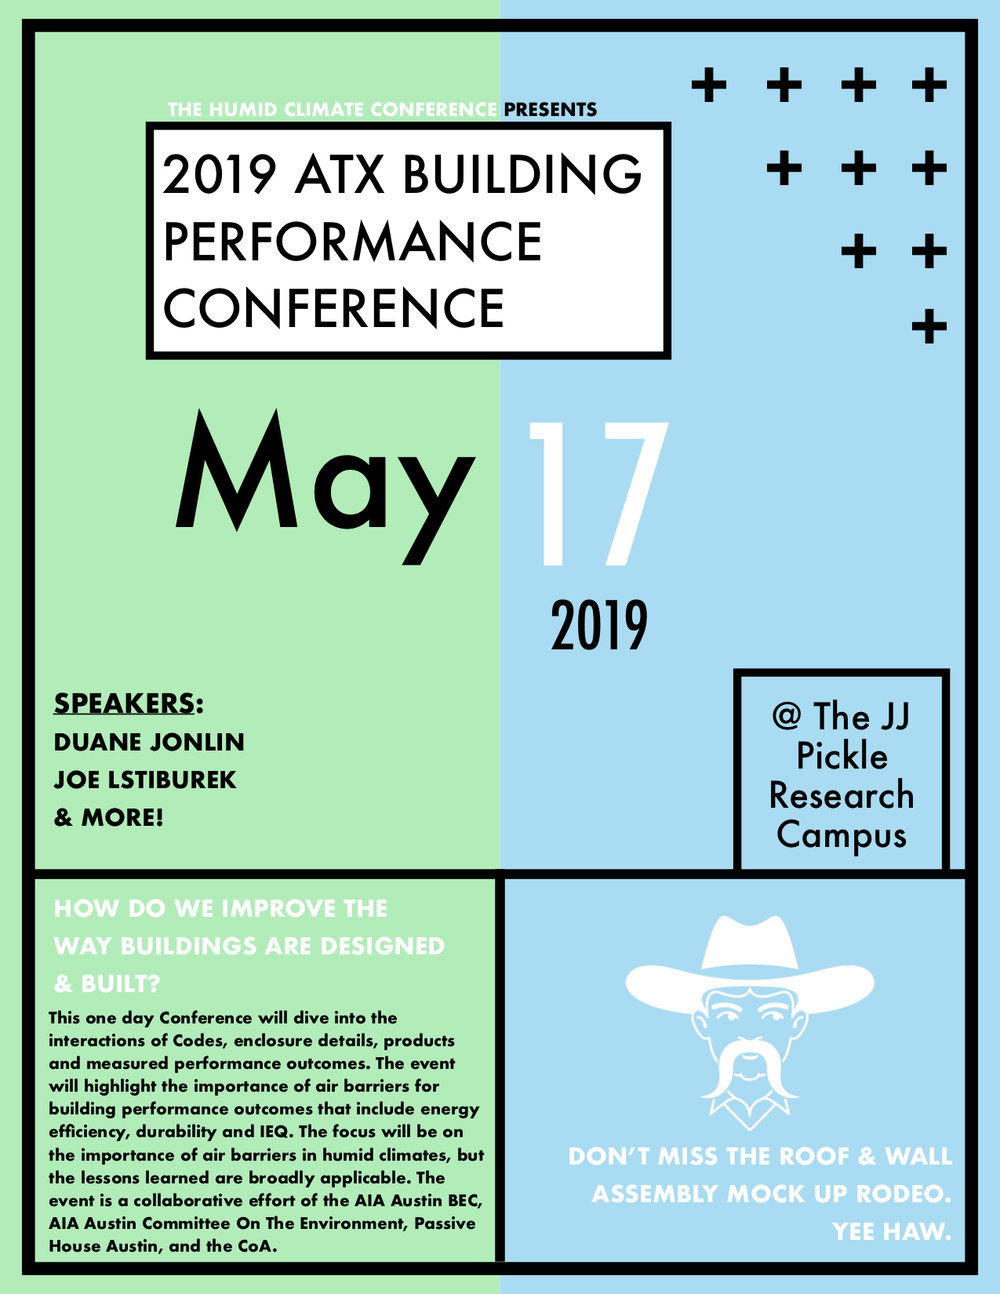 2019+ATX+Building+Performance+Conference.jpg